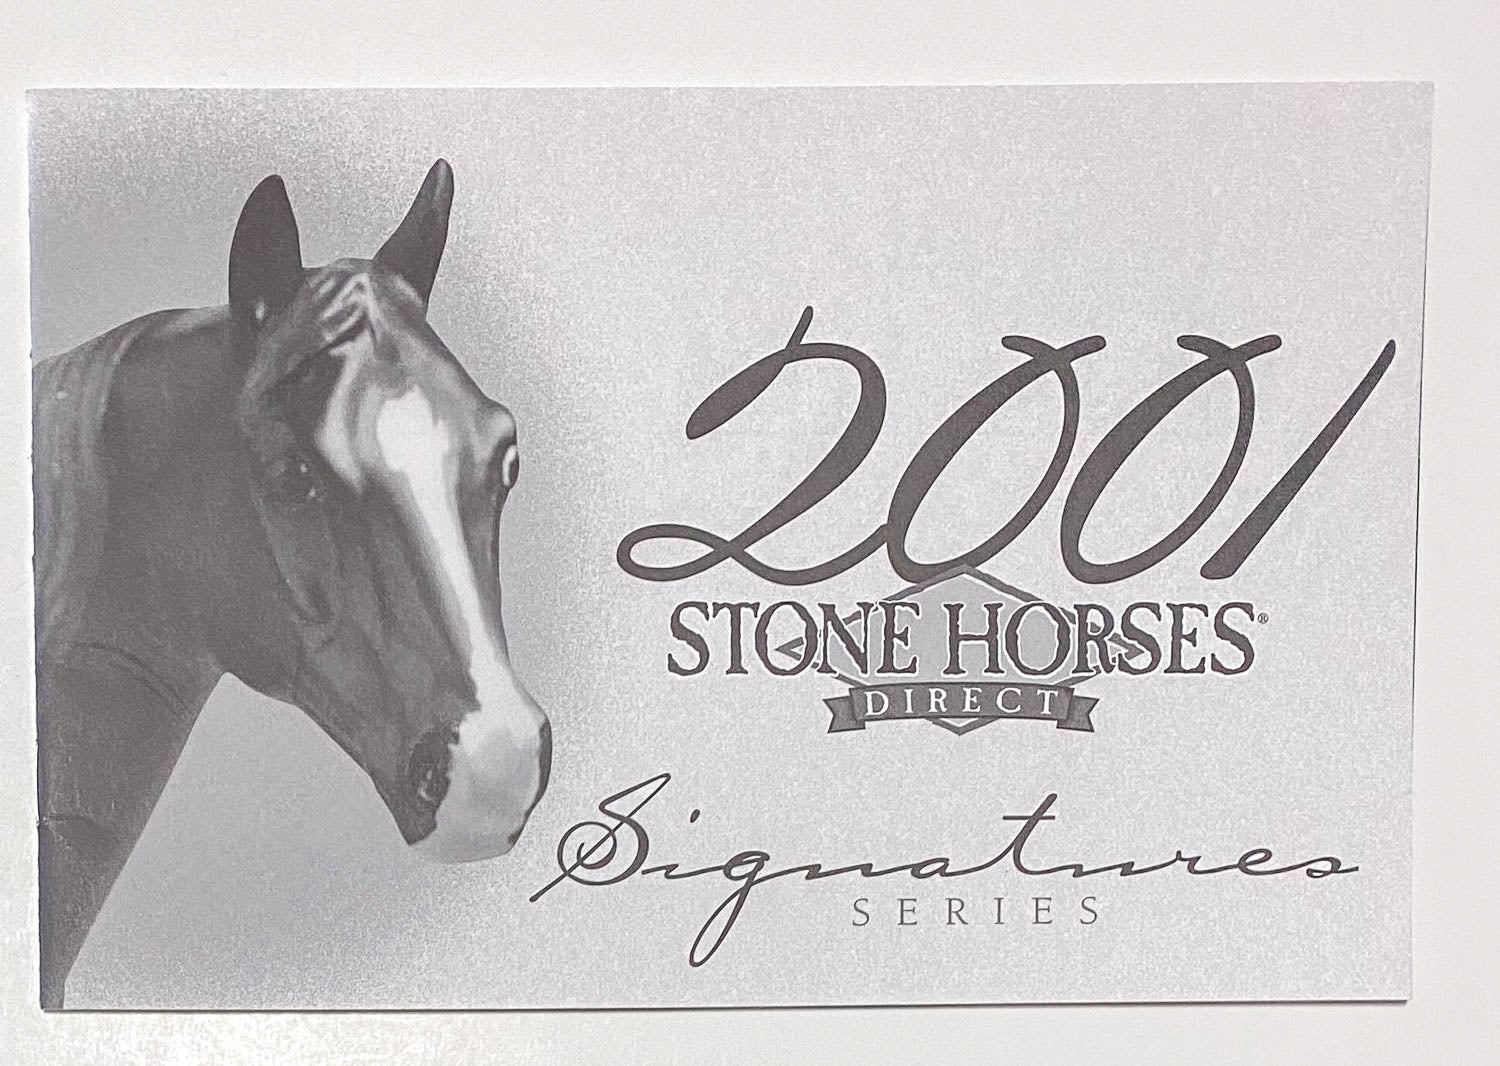 Peter Stone Horses Direct Signatures Series Book (Sale supports Harvest Hills Animal Shelter)